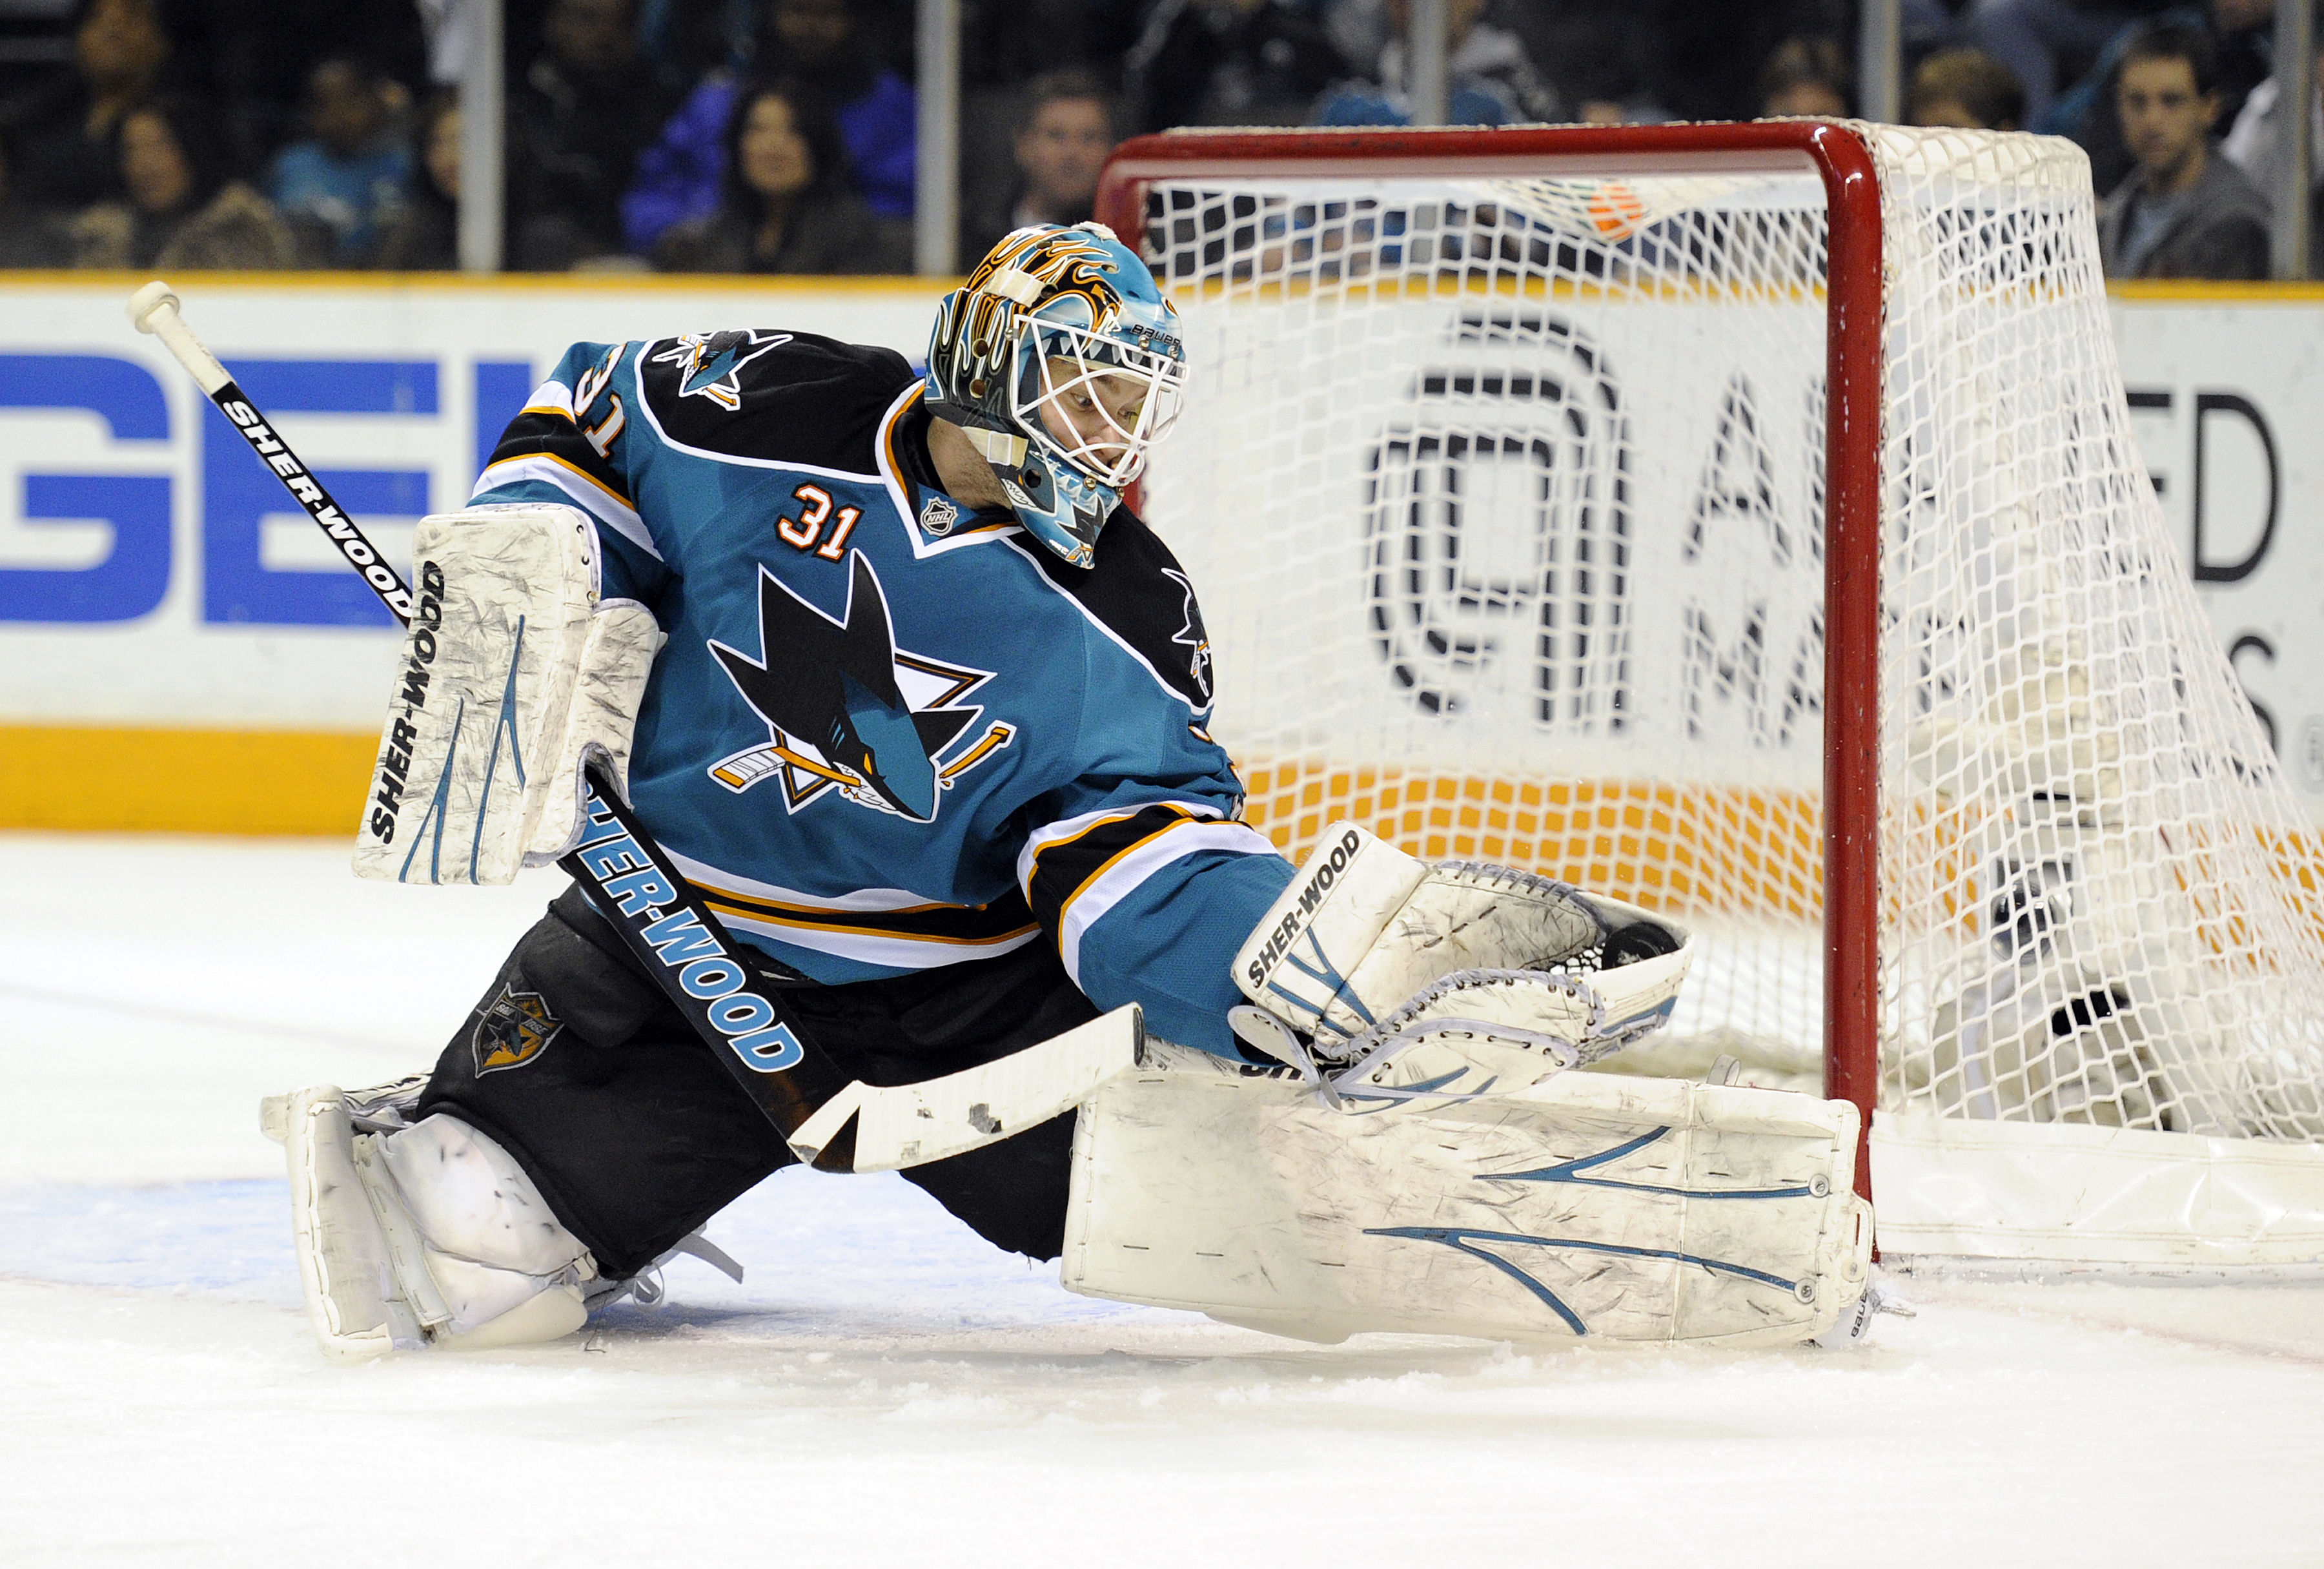 SAN JOSE, CA - MARCH 1: Antti Niemi #31 of the San Jose Sharks makes a glove hand save against the Colorado Avalanche in the first period during an NHL hockey game at the HP Pavilion on March 1, 2011 in San Jose, California. (Photo by Thearon W. Henderson